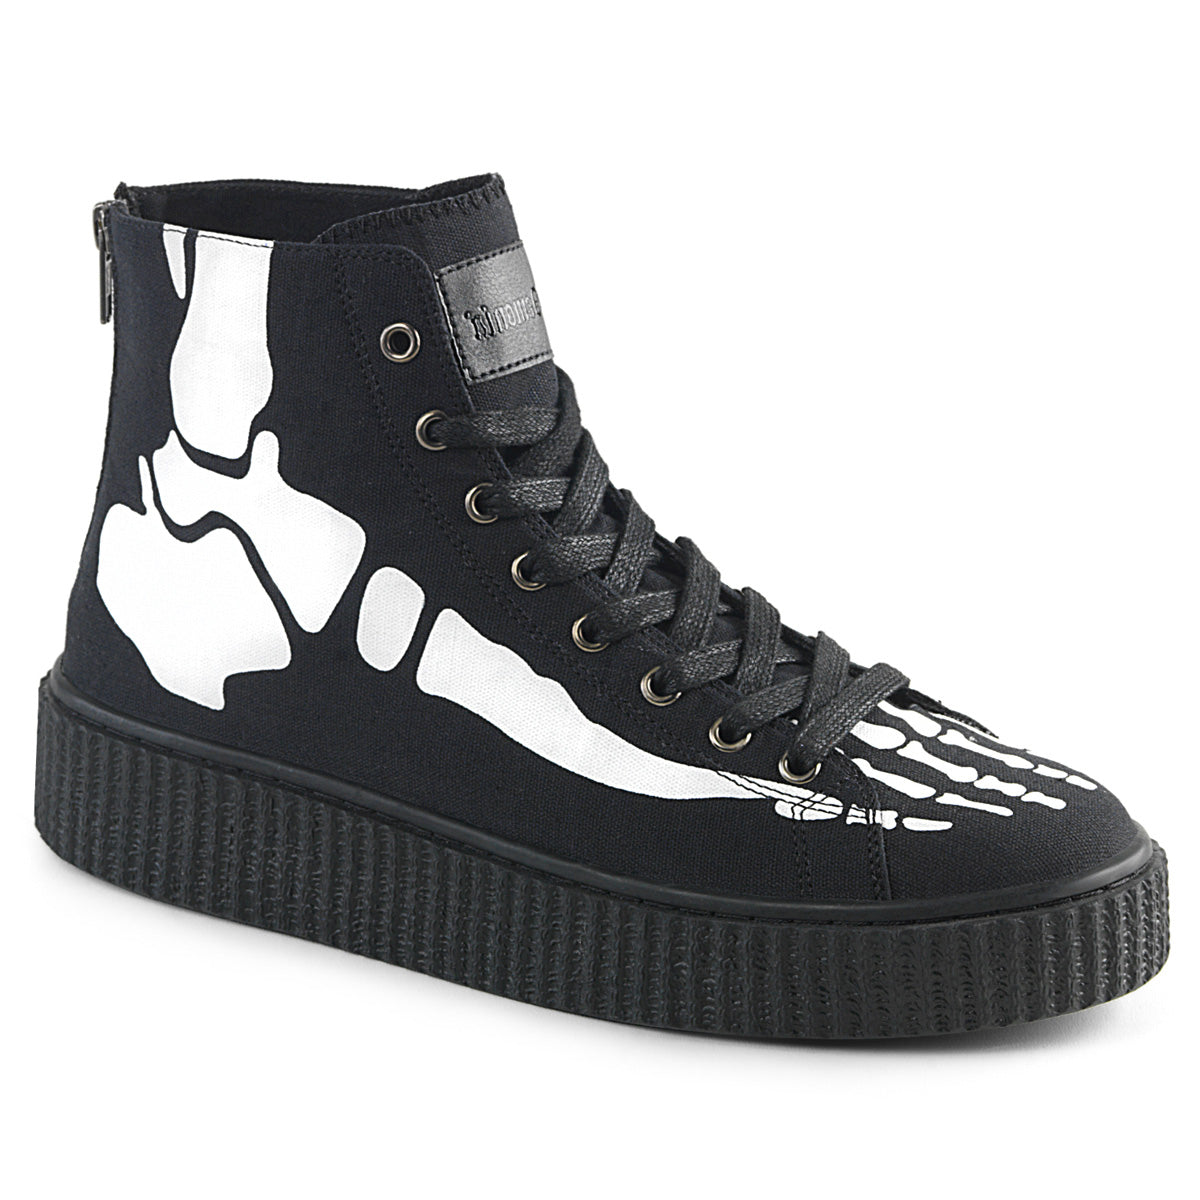 "1 1/2"" PF Round Toe Lace-Up Front High Top Creeper Sneaker,"